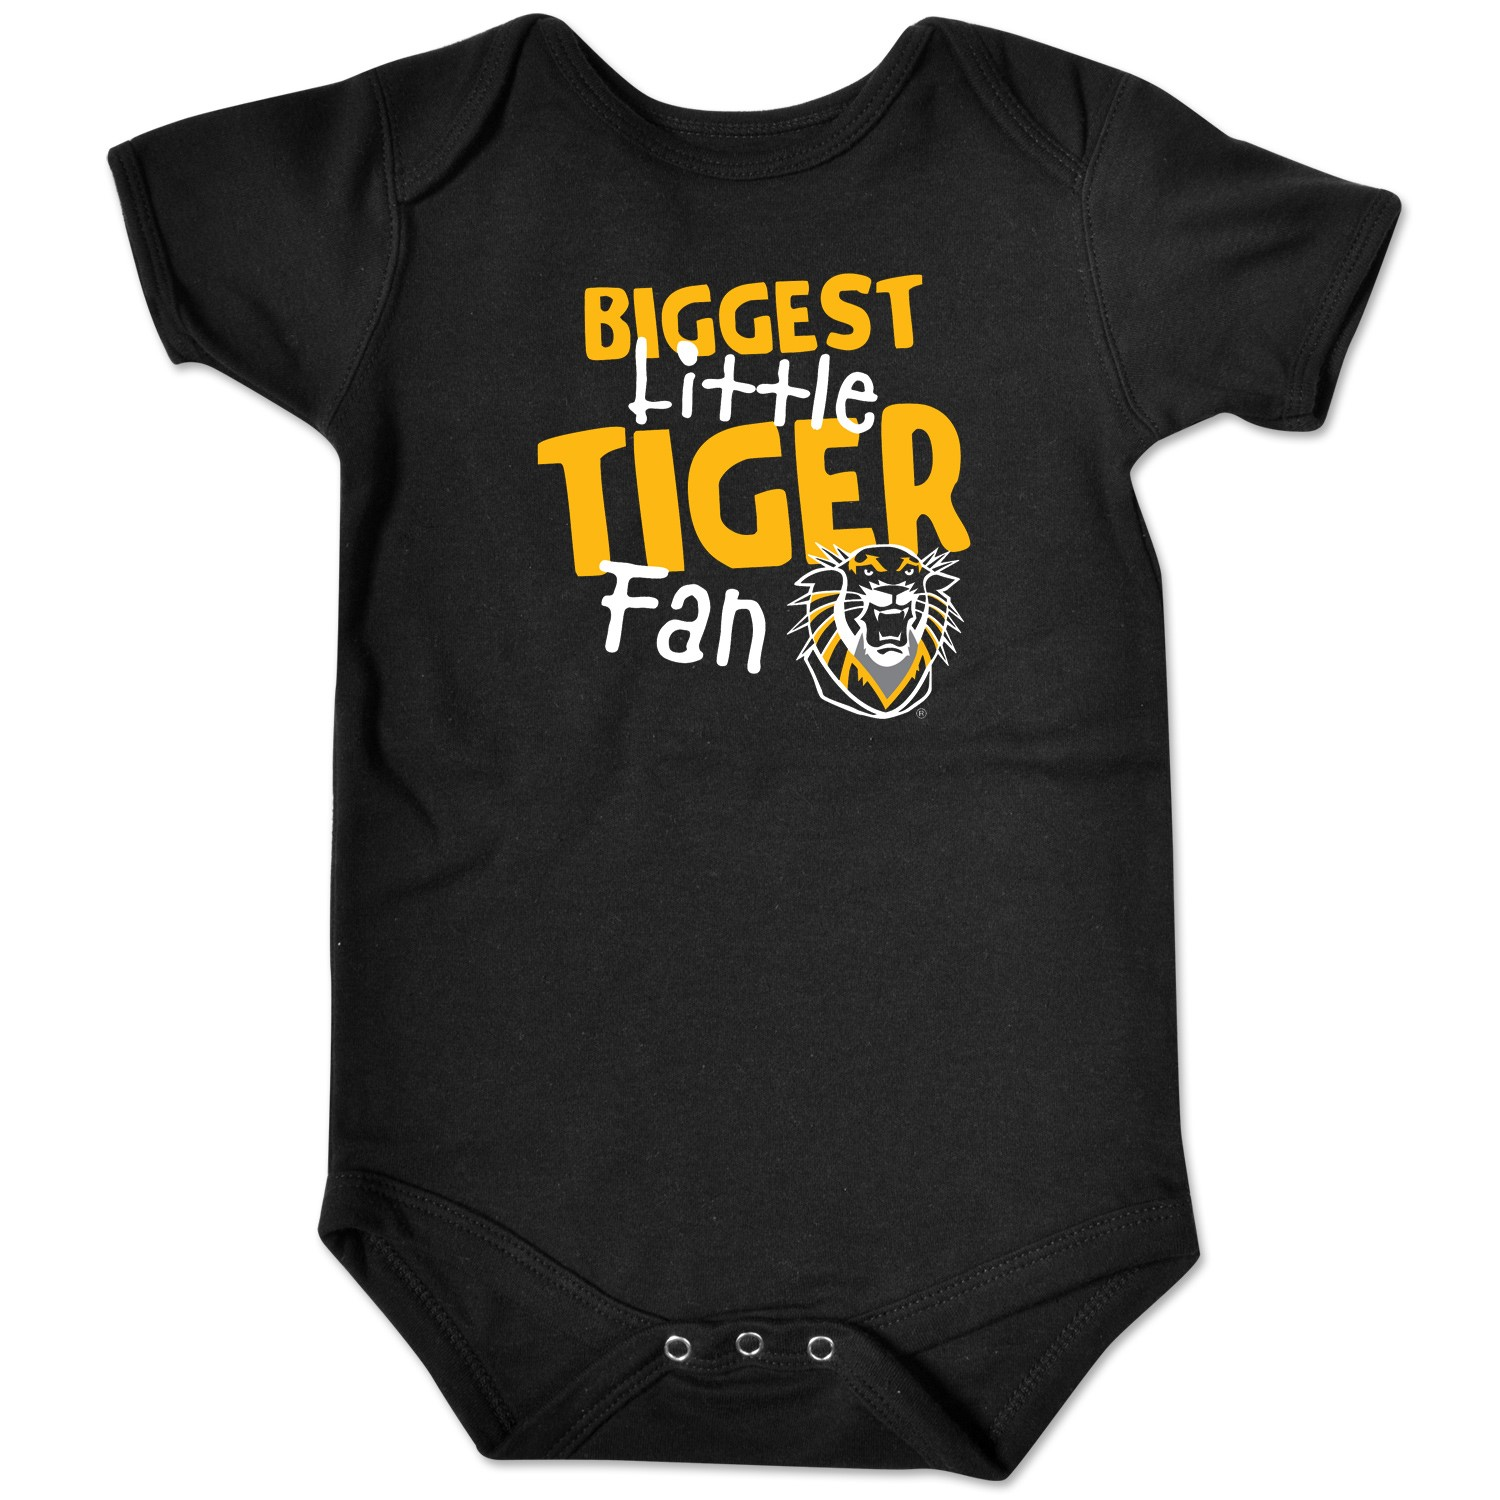 Alternative Image for the Infant Bodysuit, Biggest Little Tiger Fan with Mascot, College Kids product